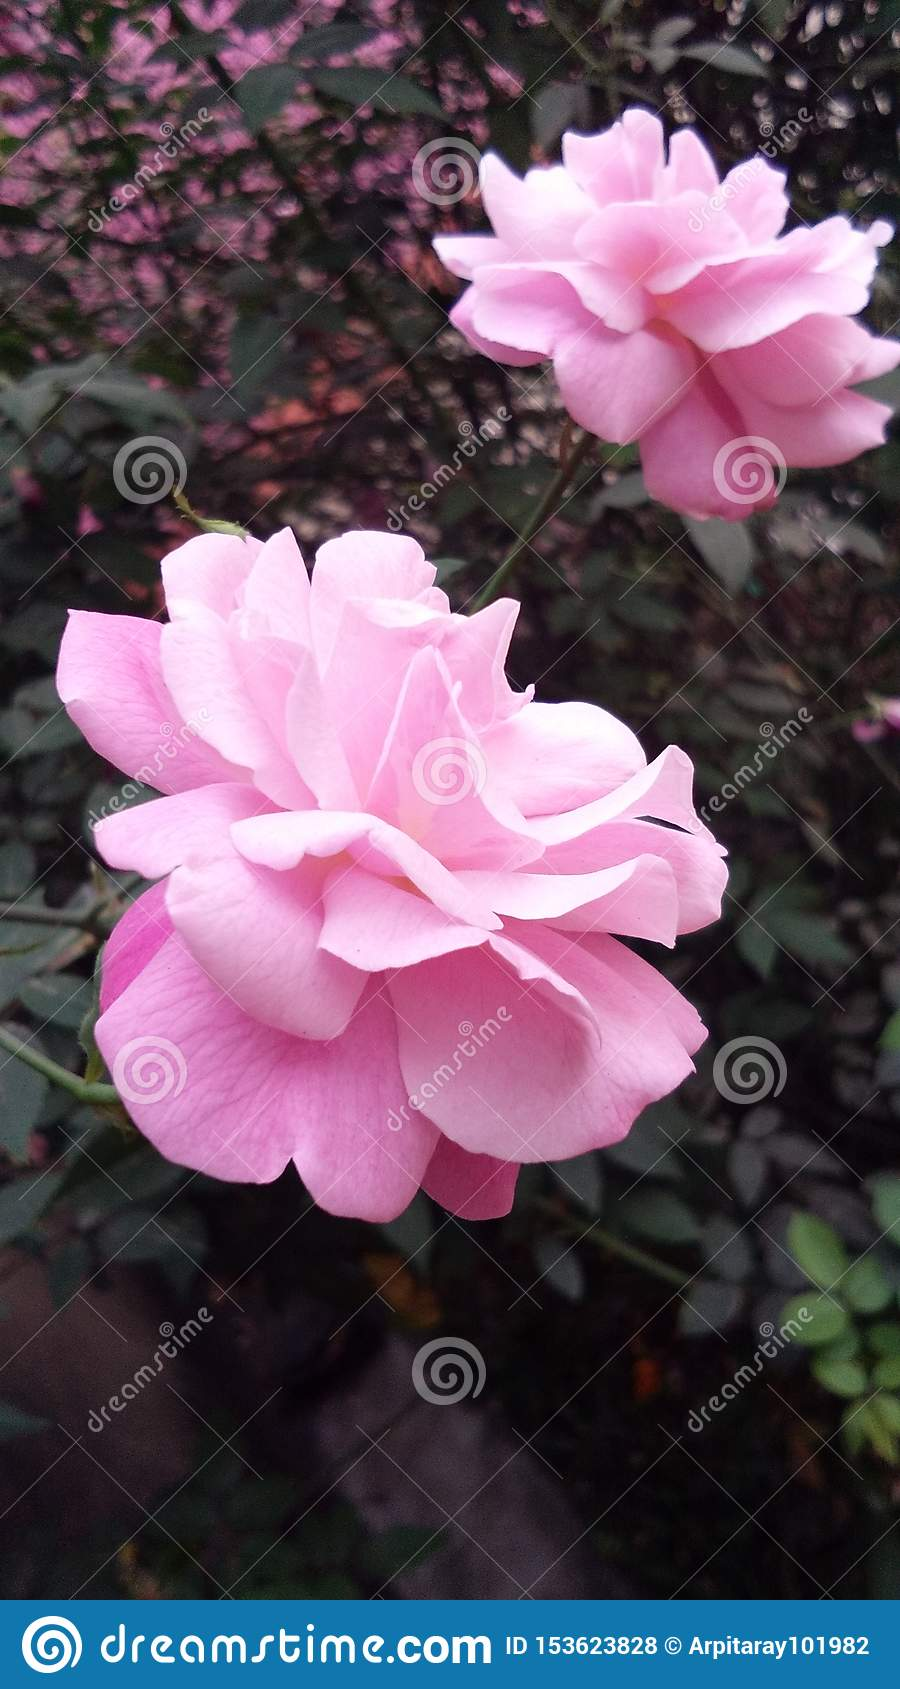 The recreating beauty of rose